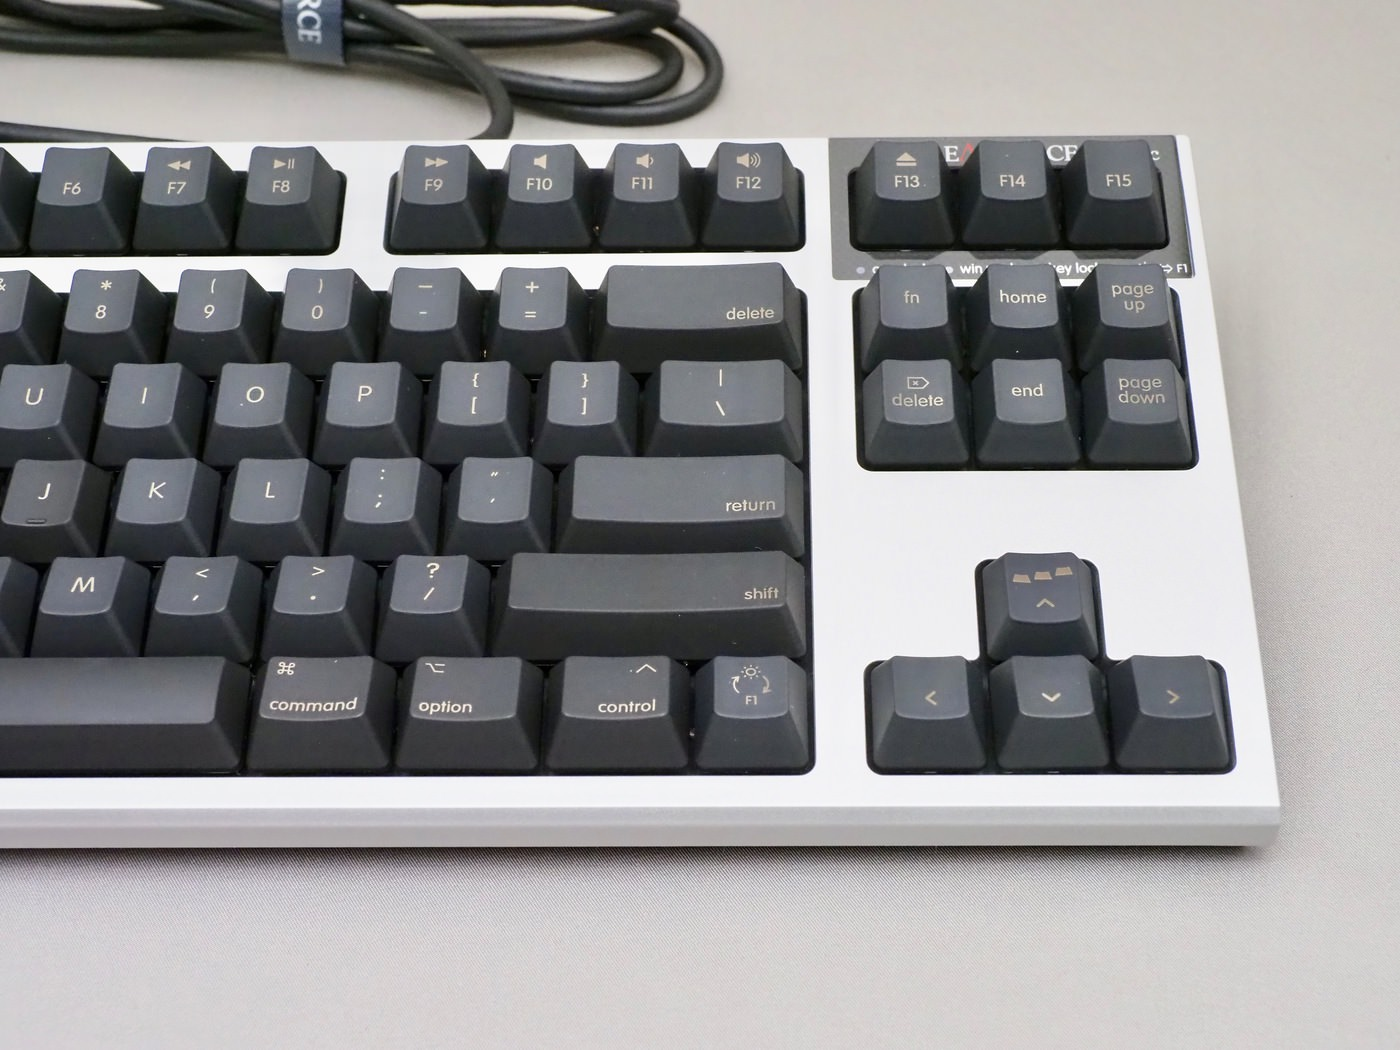 realforce-tkl-for-mac-pfu-limited-edition-review_00028